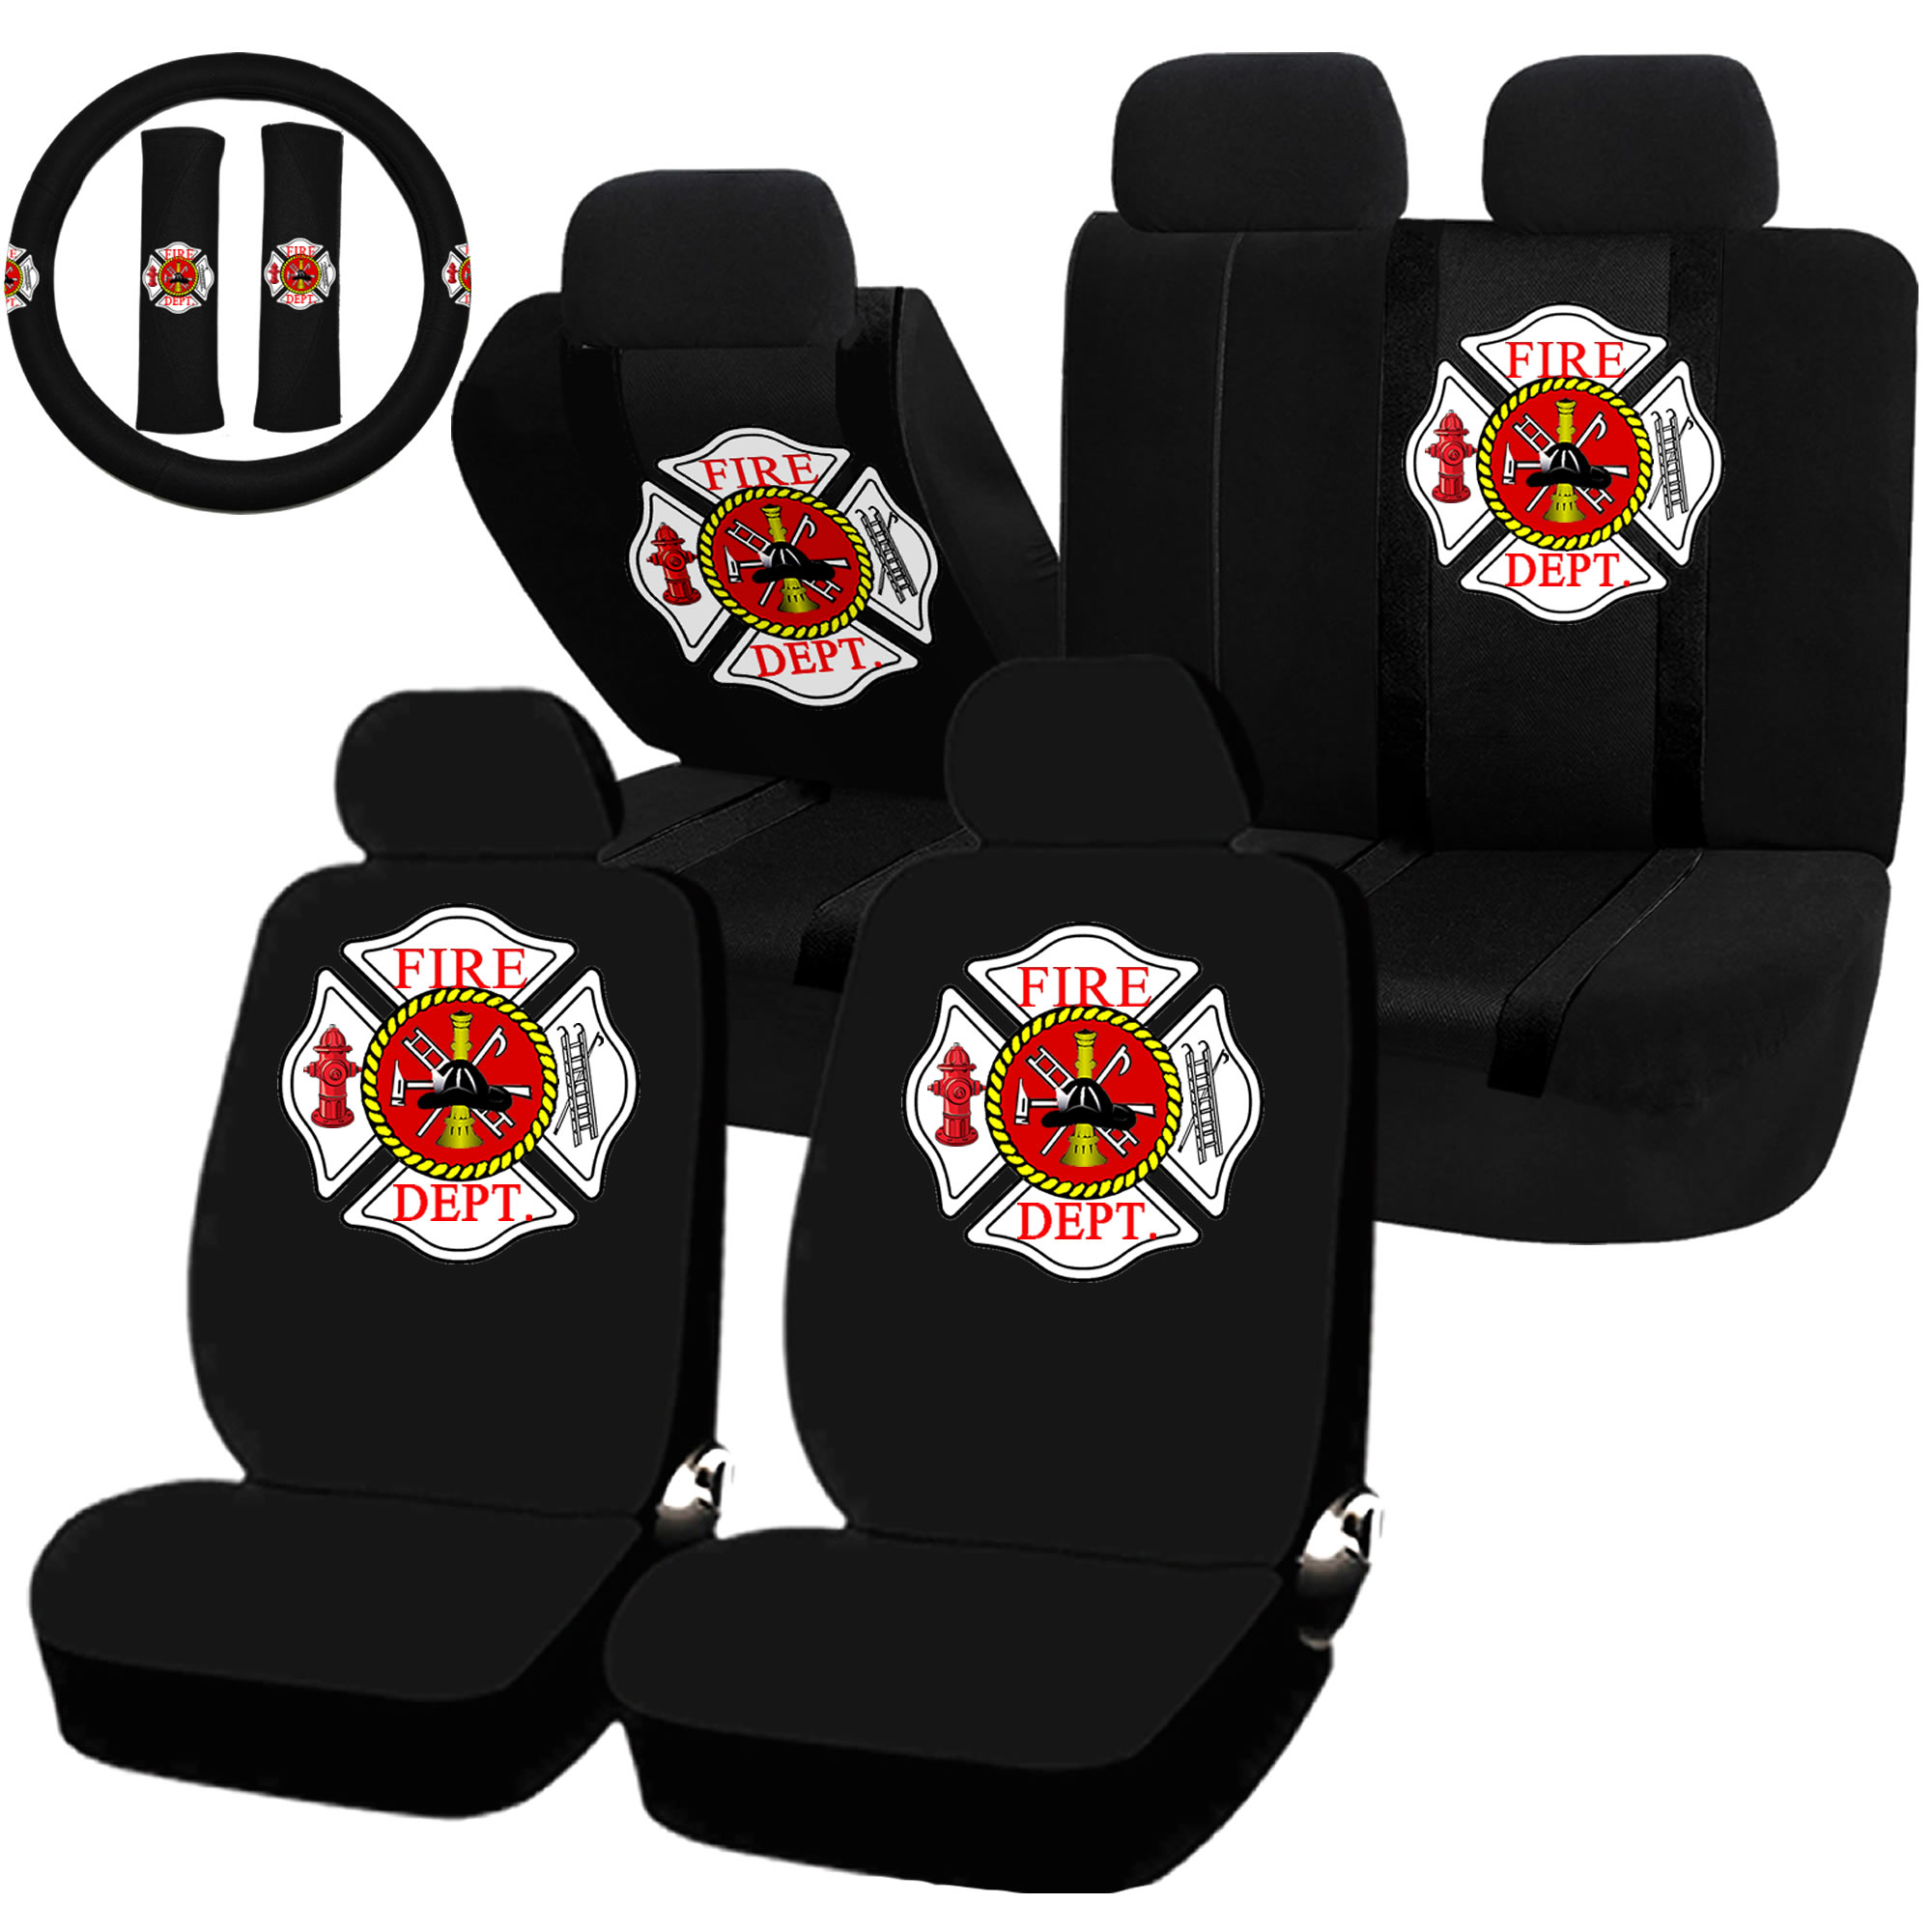 Fire Department Fire Fighter Seat Covers & Steering Wheel Set Universal Car Truck SUV